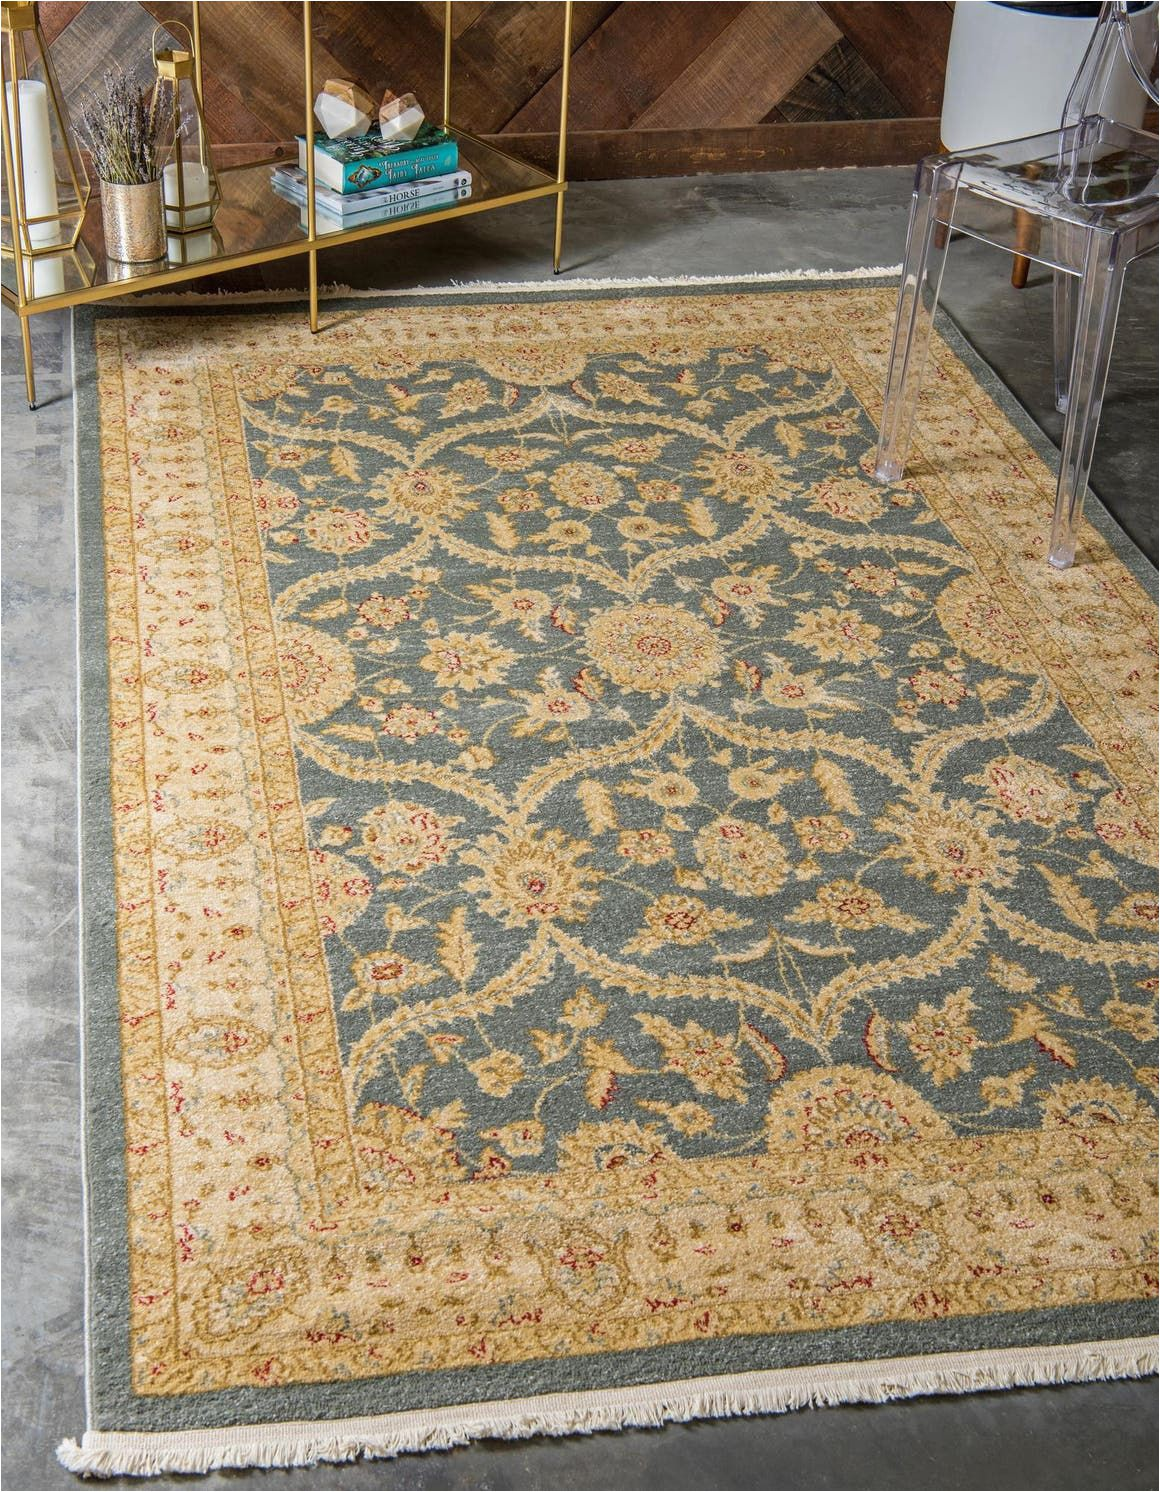 12×16 area Rugs Near Me Chelsea Blue 12×16 area Rug In 2020